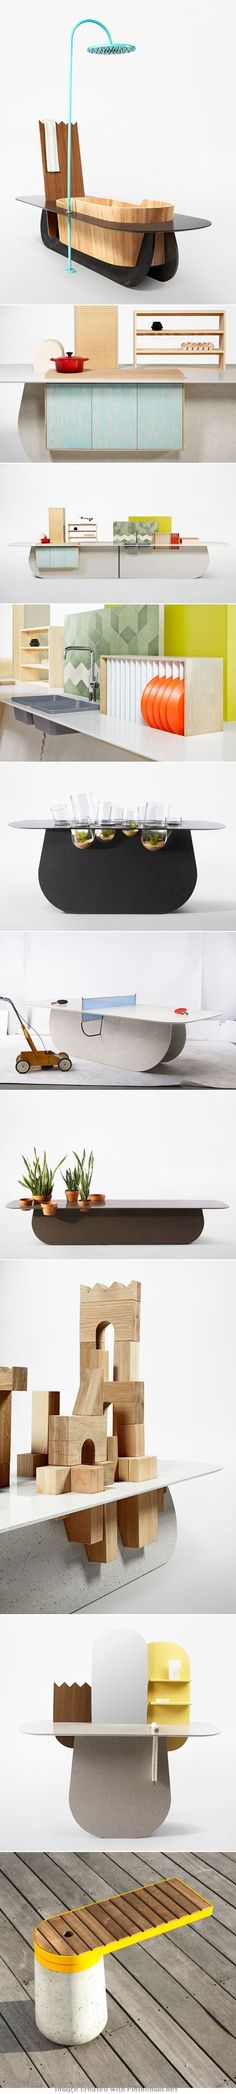 Fun Fun Furnitures! - Raw Edges Design Studio